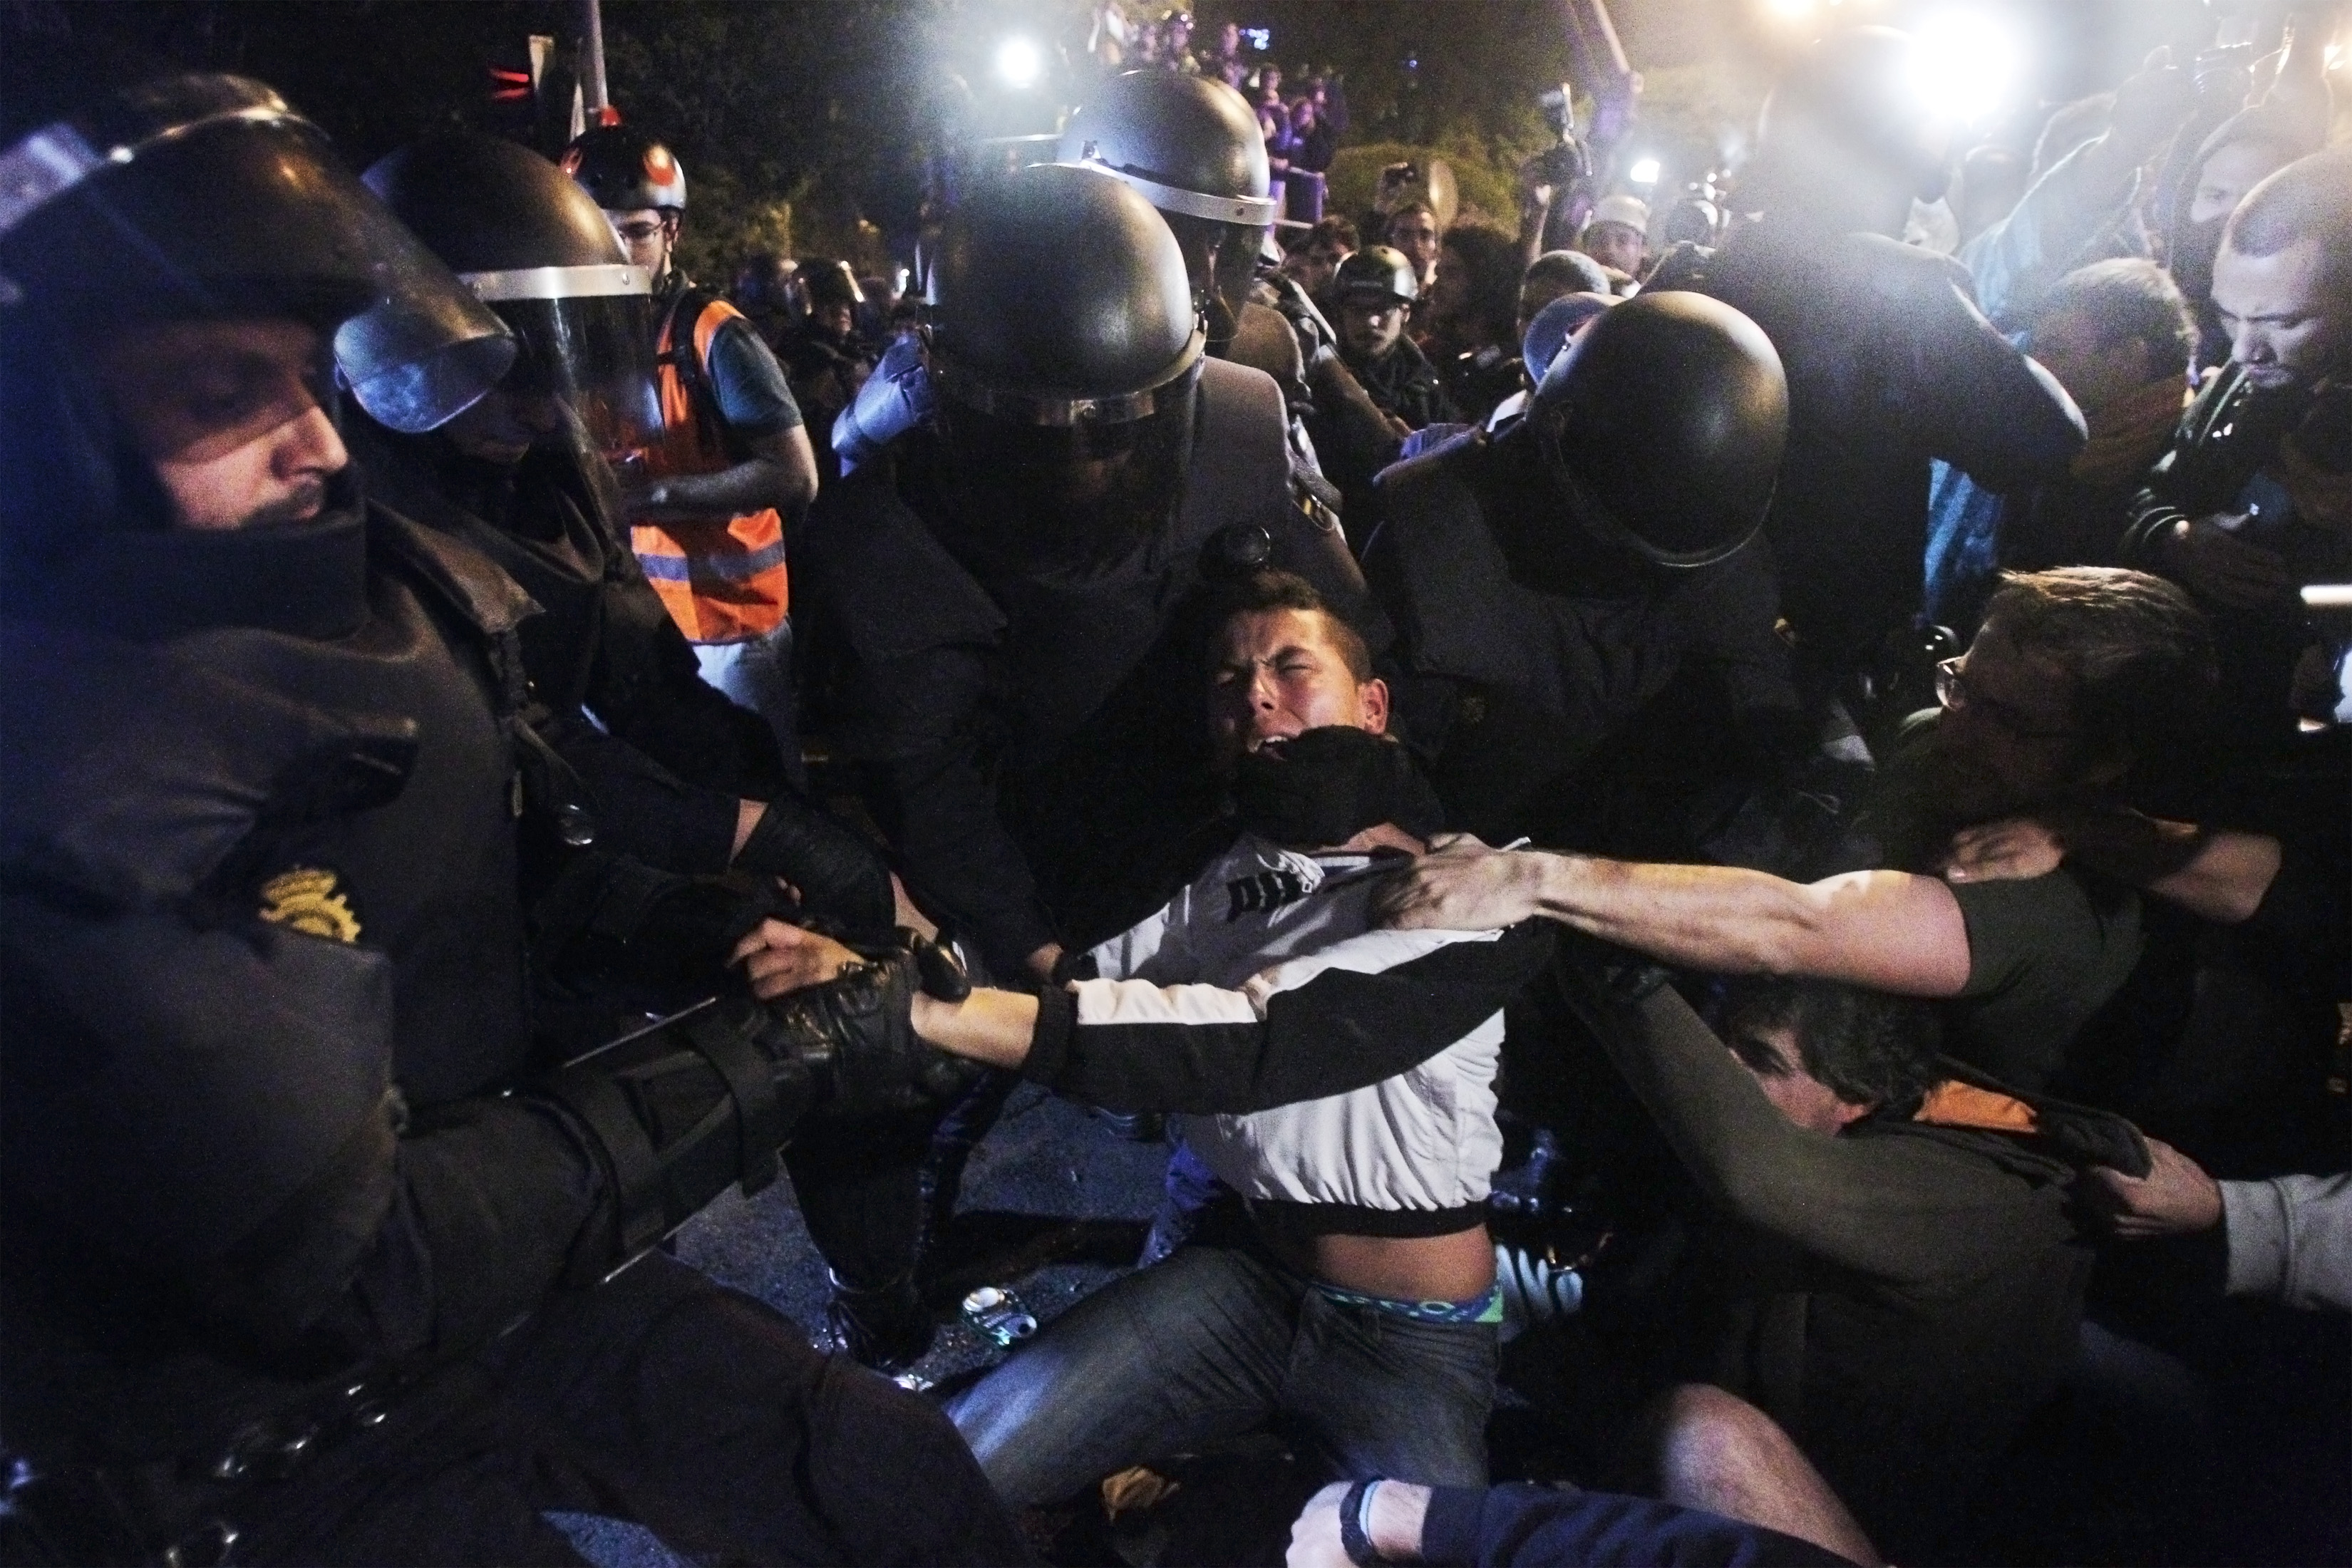 madrid-athens-protests-sep-2012-11